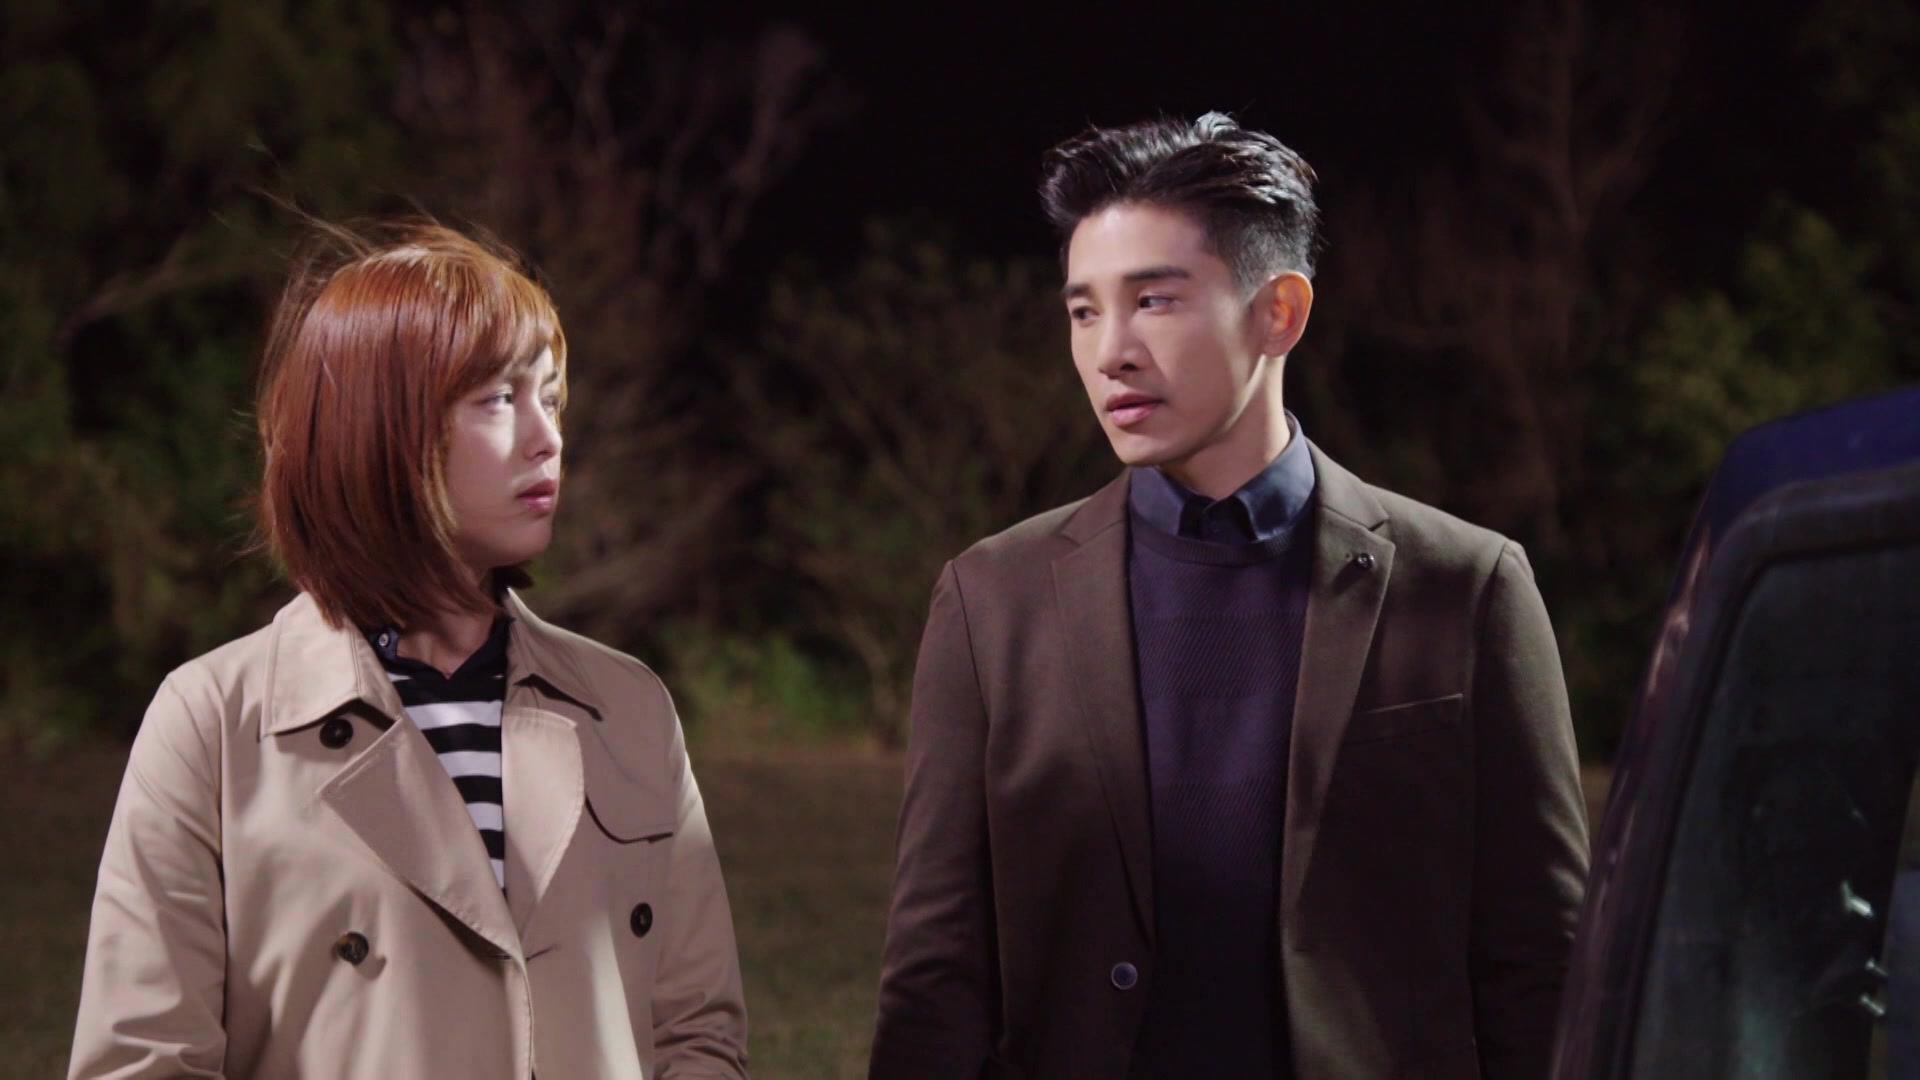 Behind Your Smile Episode 18